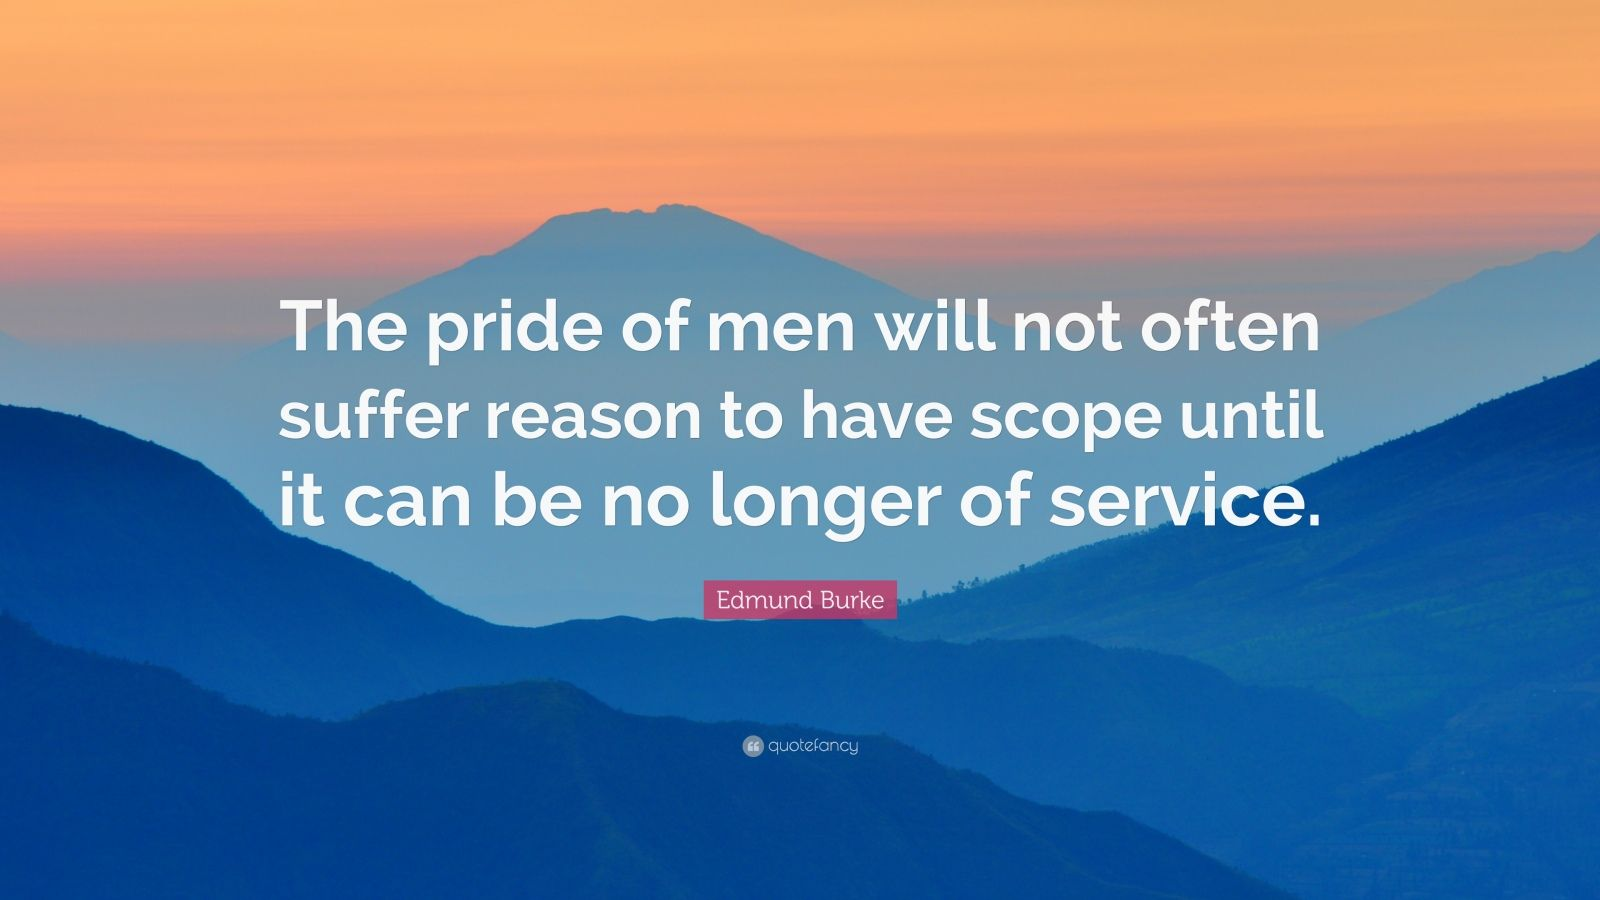 """Edmund Burke Quote: """"The pride of men will not often suffer reason to have scope until it can be no longer of service."""""""